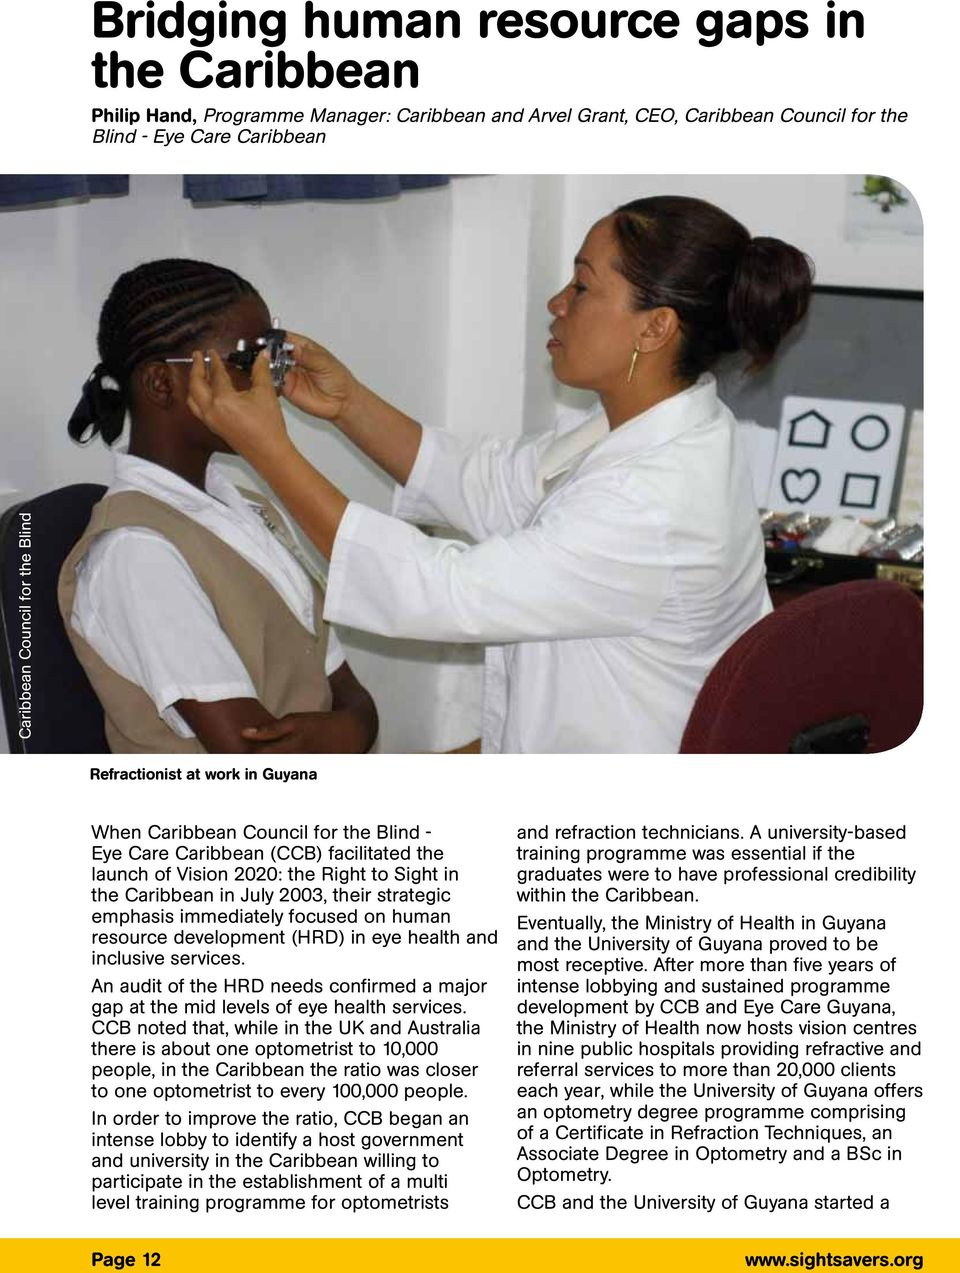 strategic emphasis immediately focused on human resource deelopment (HRD) in eye health and inclusie serices. An audit of the HRD needs confirmed a major gap at the mid leels of eye health serices.